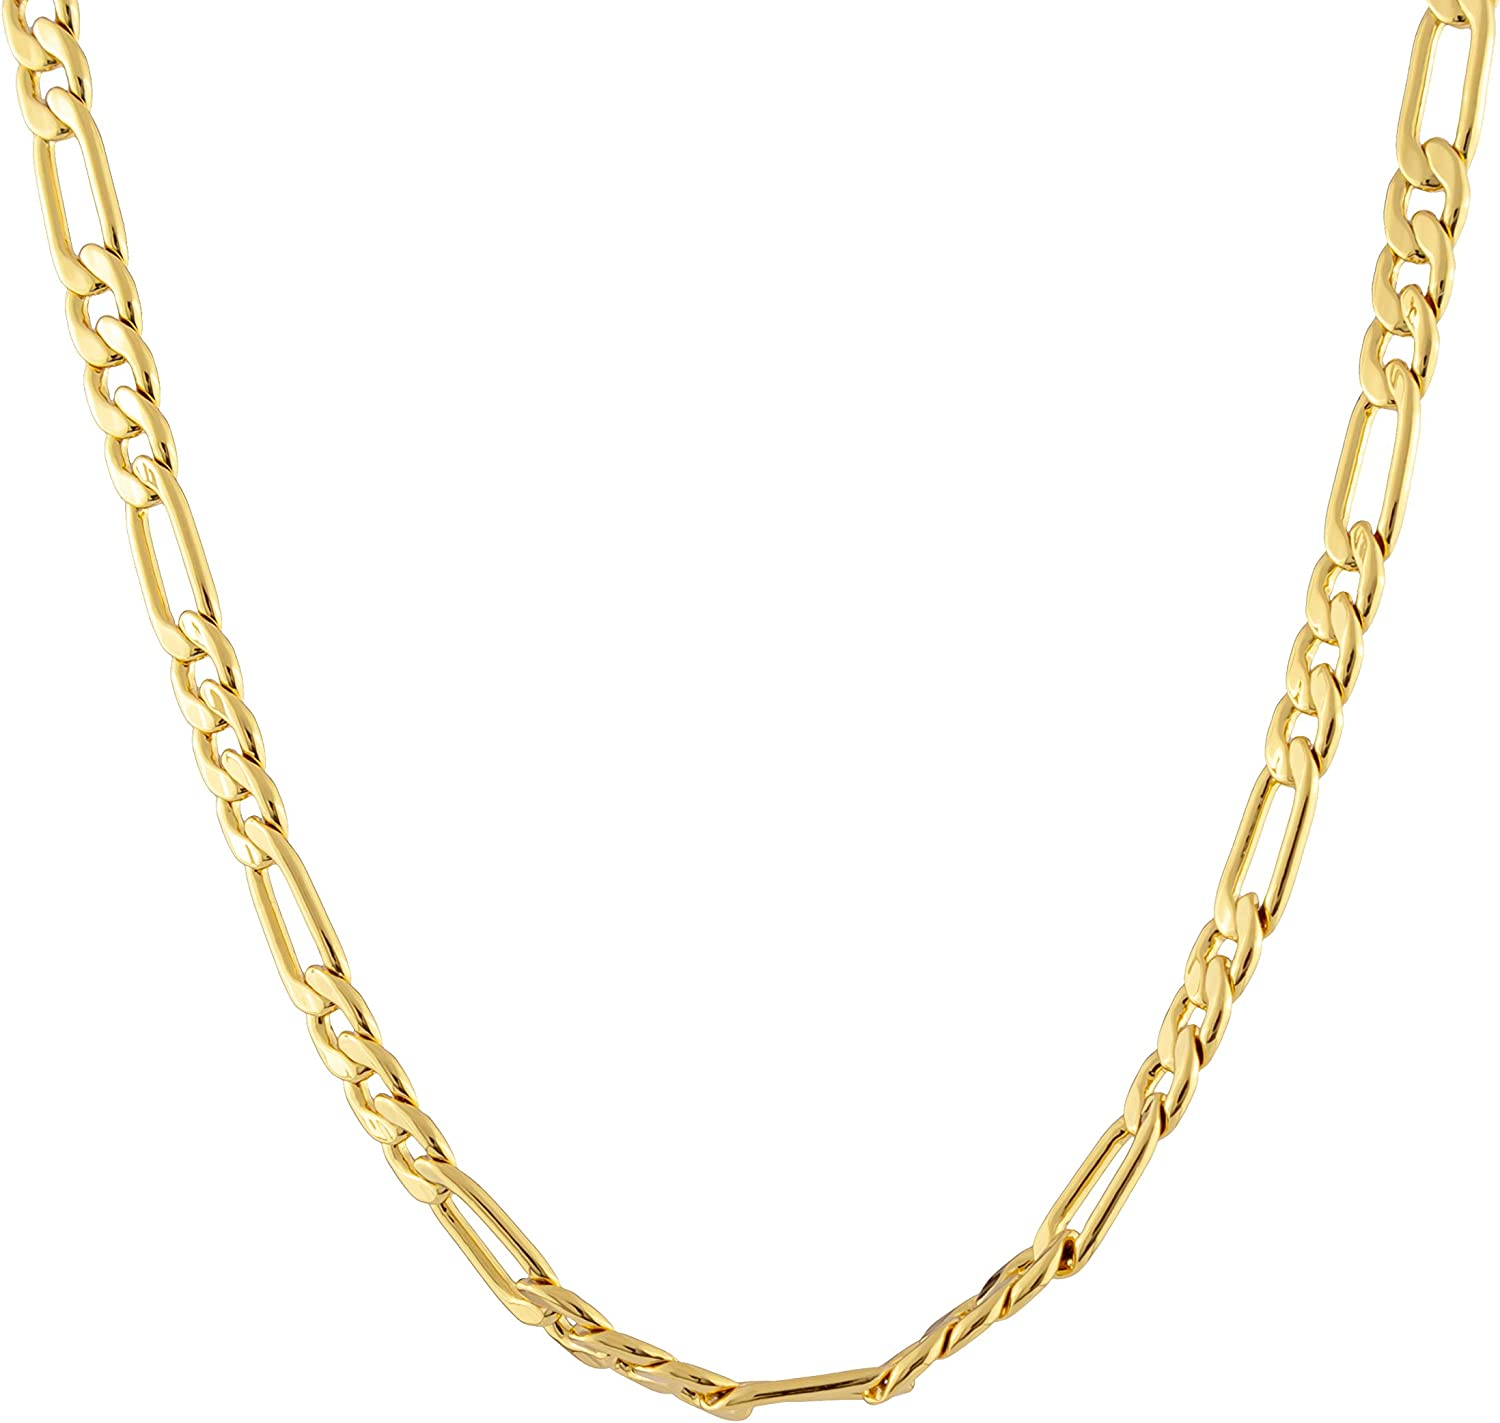 Gold Plated Figaro Chain 4mm New Solid Link Necklace